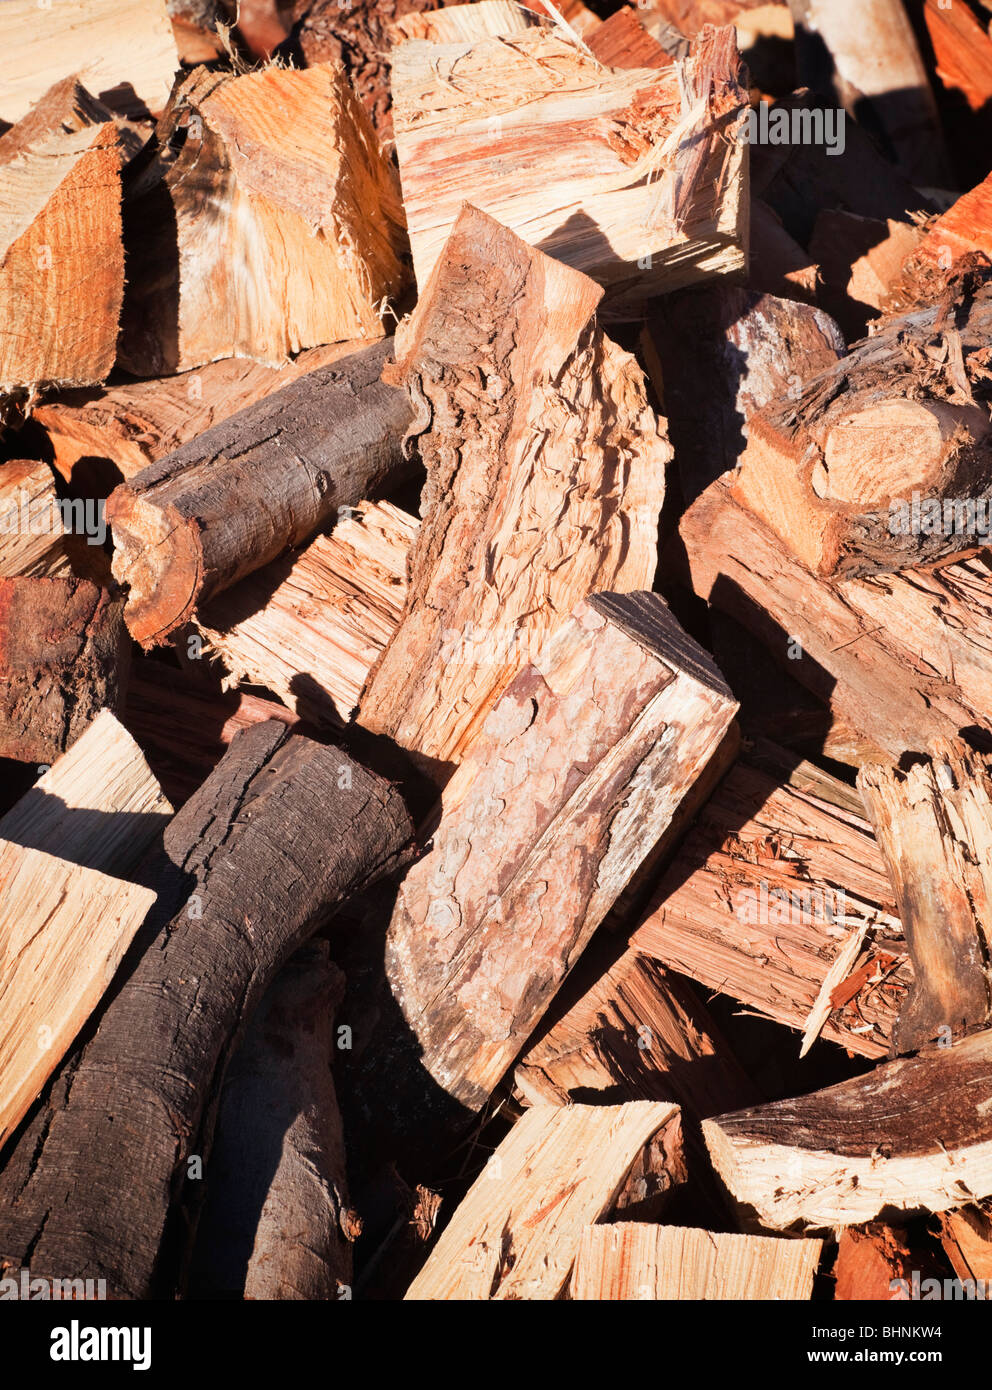 Pile of firewood - Stock Image